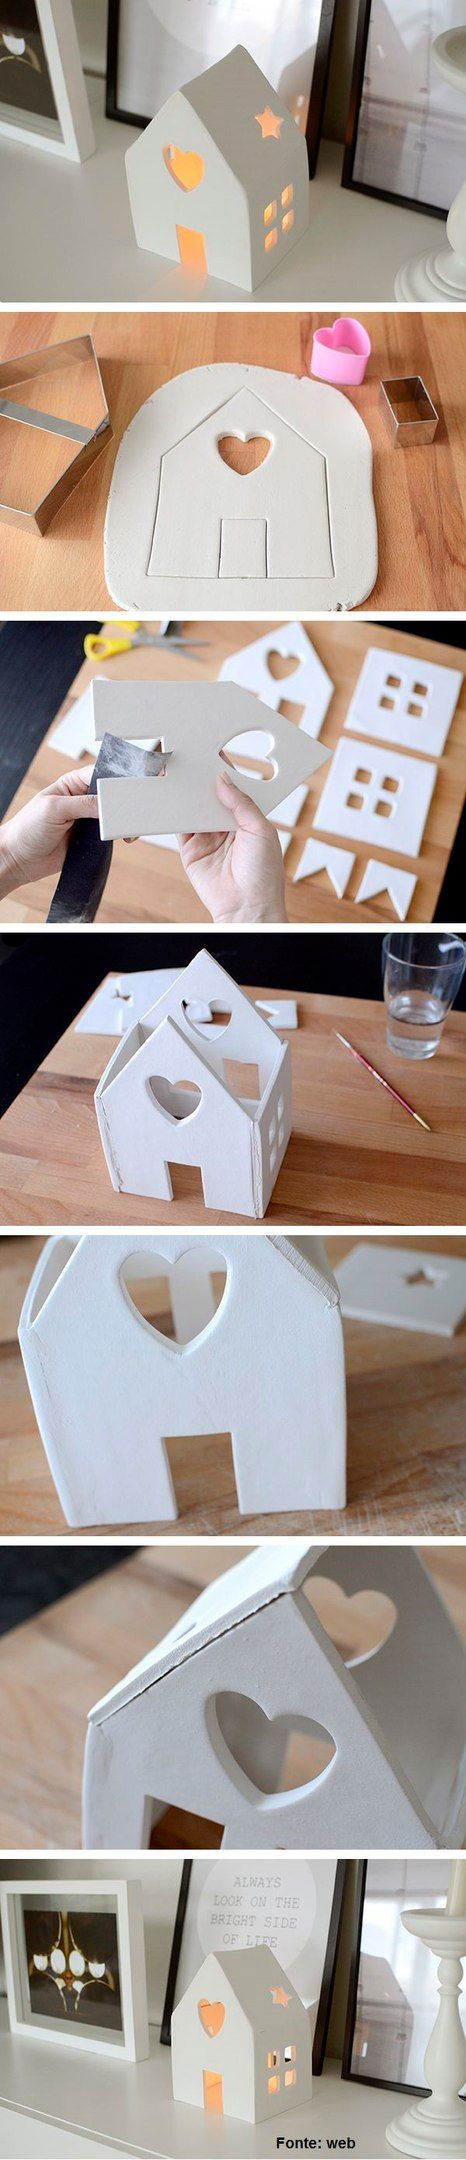 How to make a ceramic candle holder